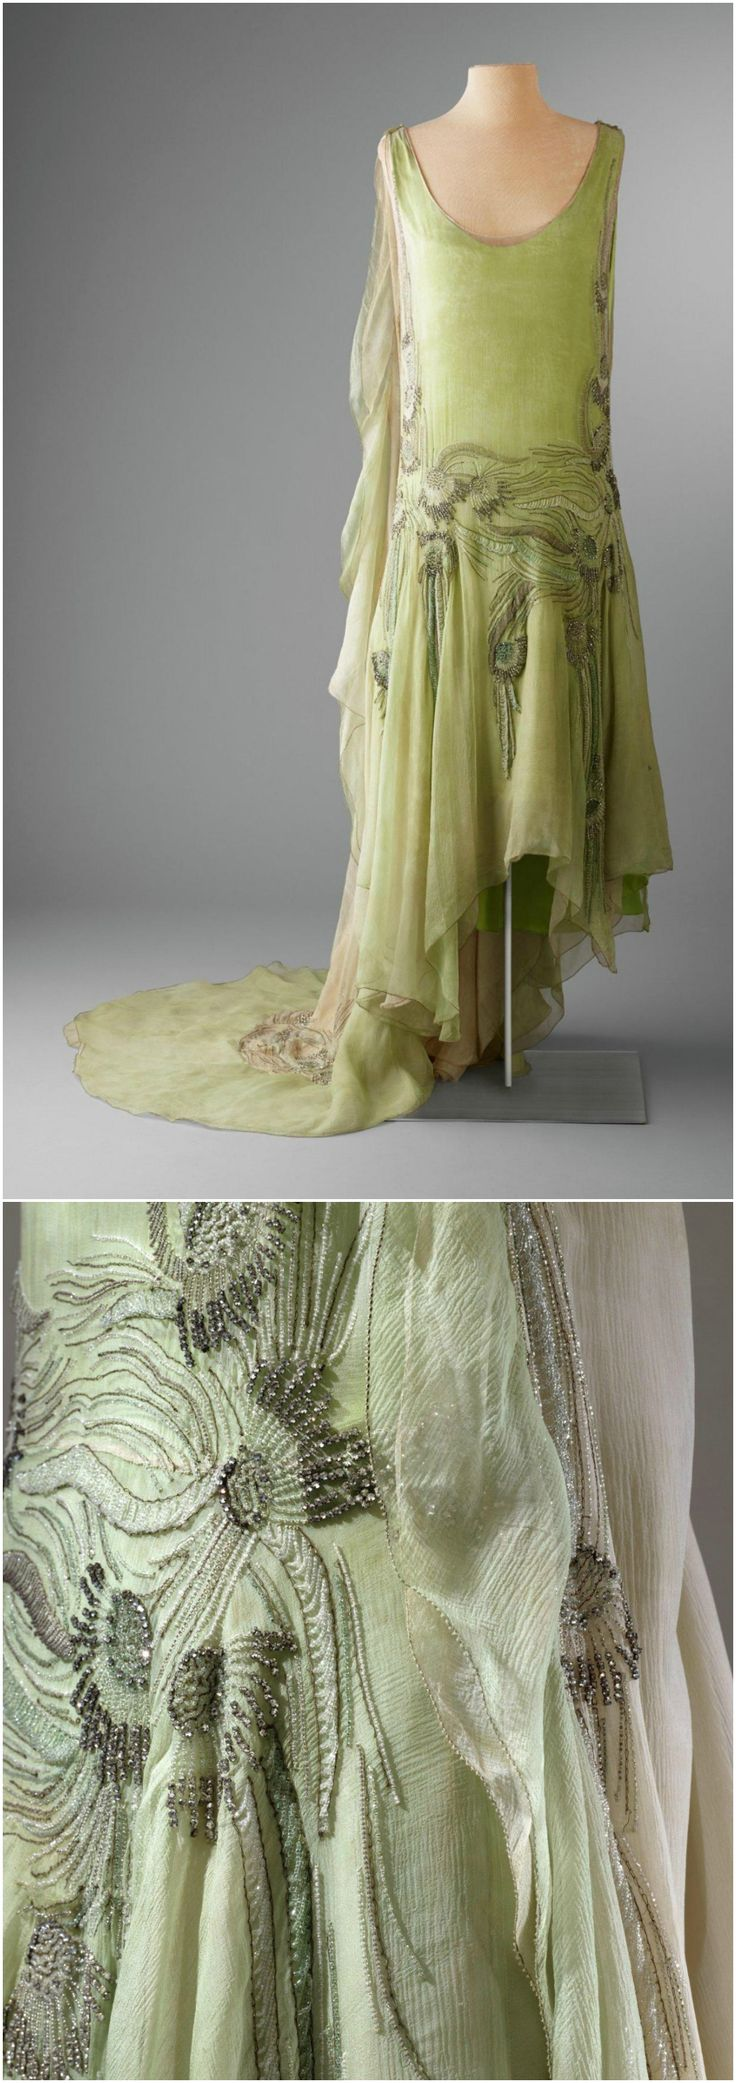 Evening dress, attributed to Callot Soeurs, 1929, Hillwood Estate, Museum & Gardens. Worn by Marjorie Merriweather Post for her presentation at the Court of St. James's. The tubular dress is sleeveless with dropped waistline and slightly flared at bottom. The garment is heavily beaded on the side seams and waist, both back and front, with rhinestones and clear bugle beads in a floral motif. Train attaches to dress with metal bars at dress shoulder. CLICK THROUGH FOR BIGGER IMAGES.